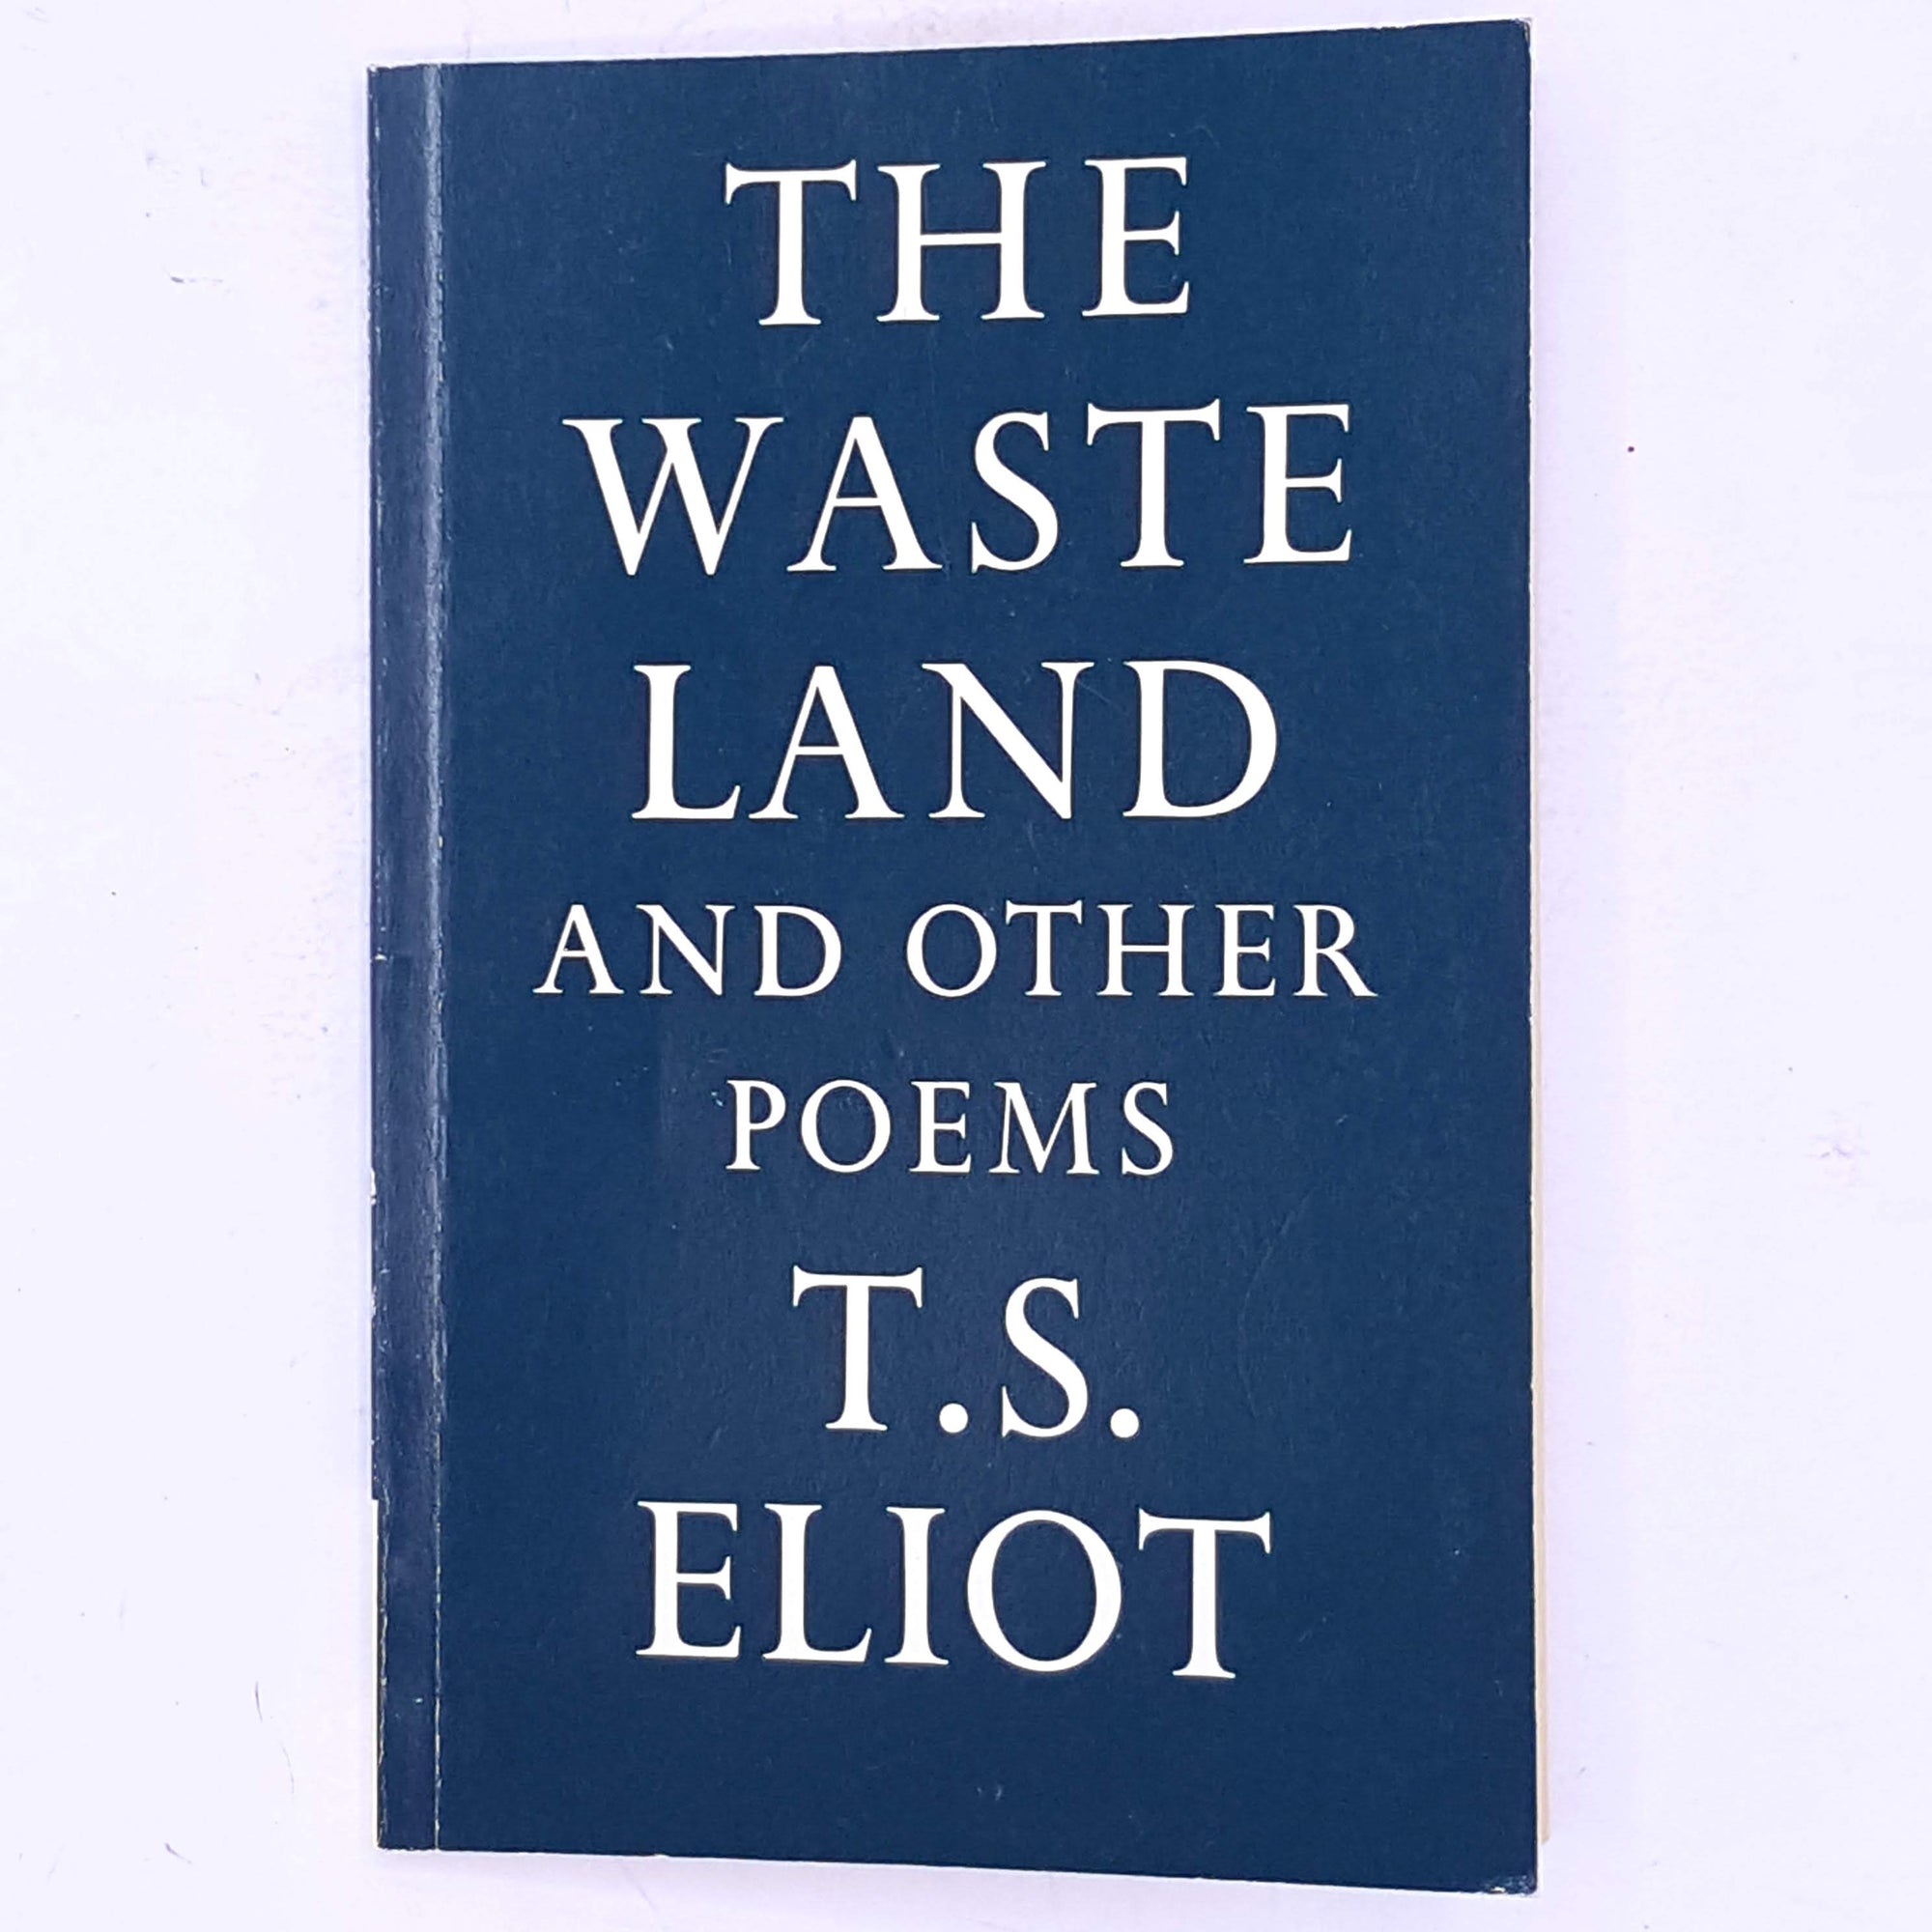 The Waste Land by T.S. Eliot